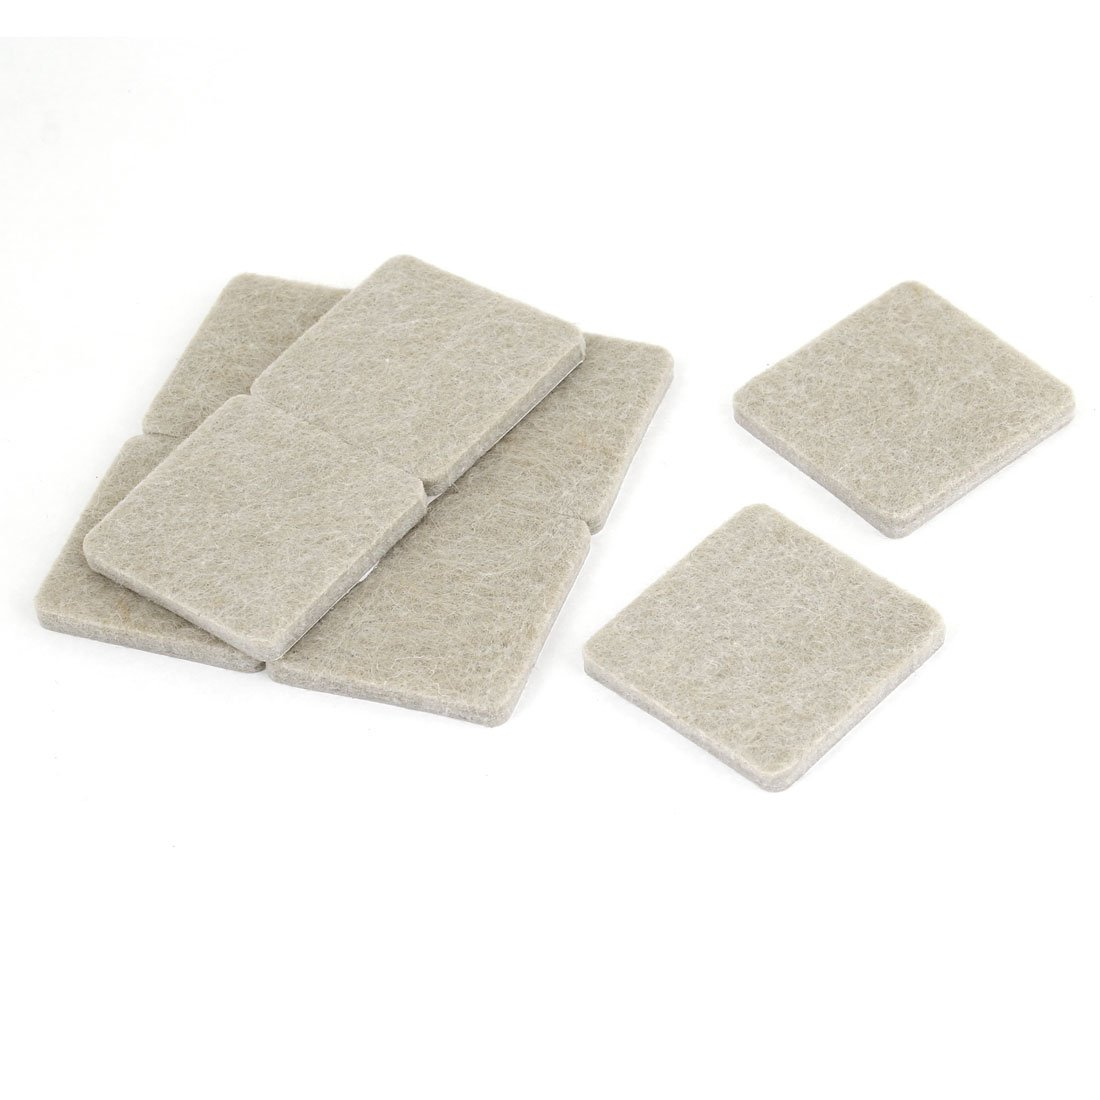 chair felt pads white plastic chairs walmart 8 pcs home table leg protection square cushion